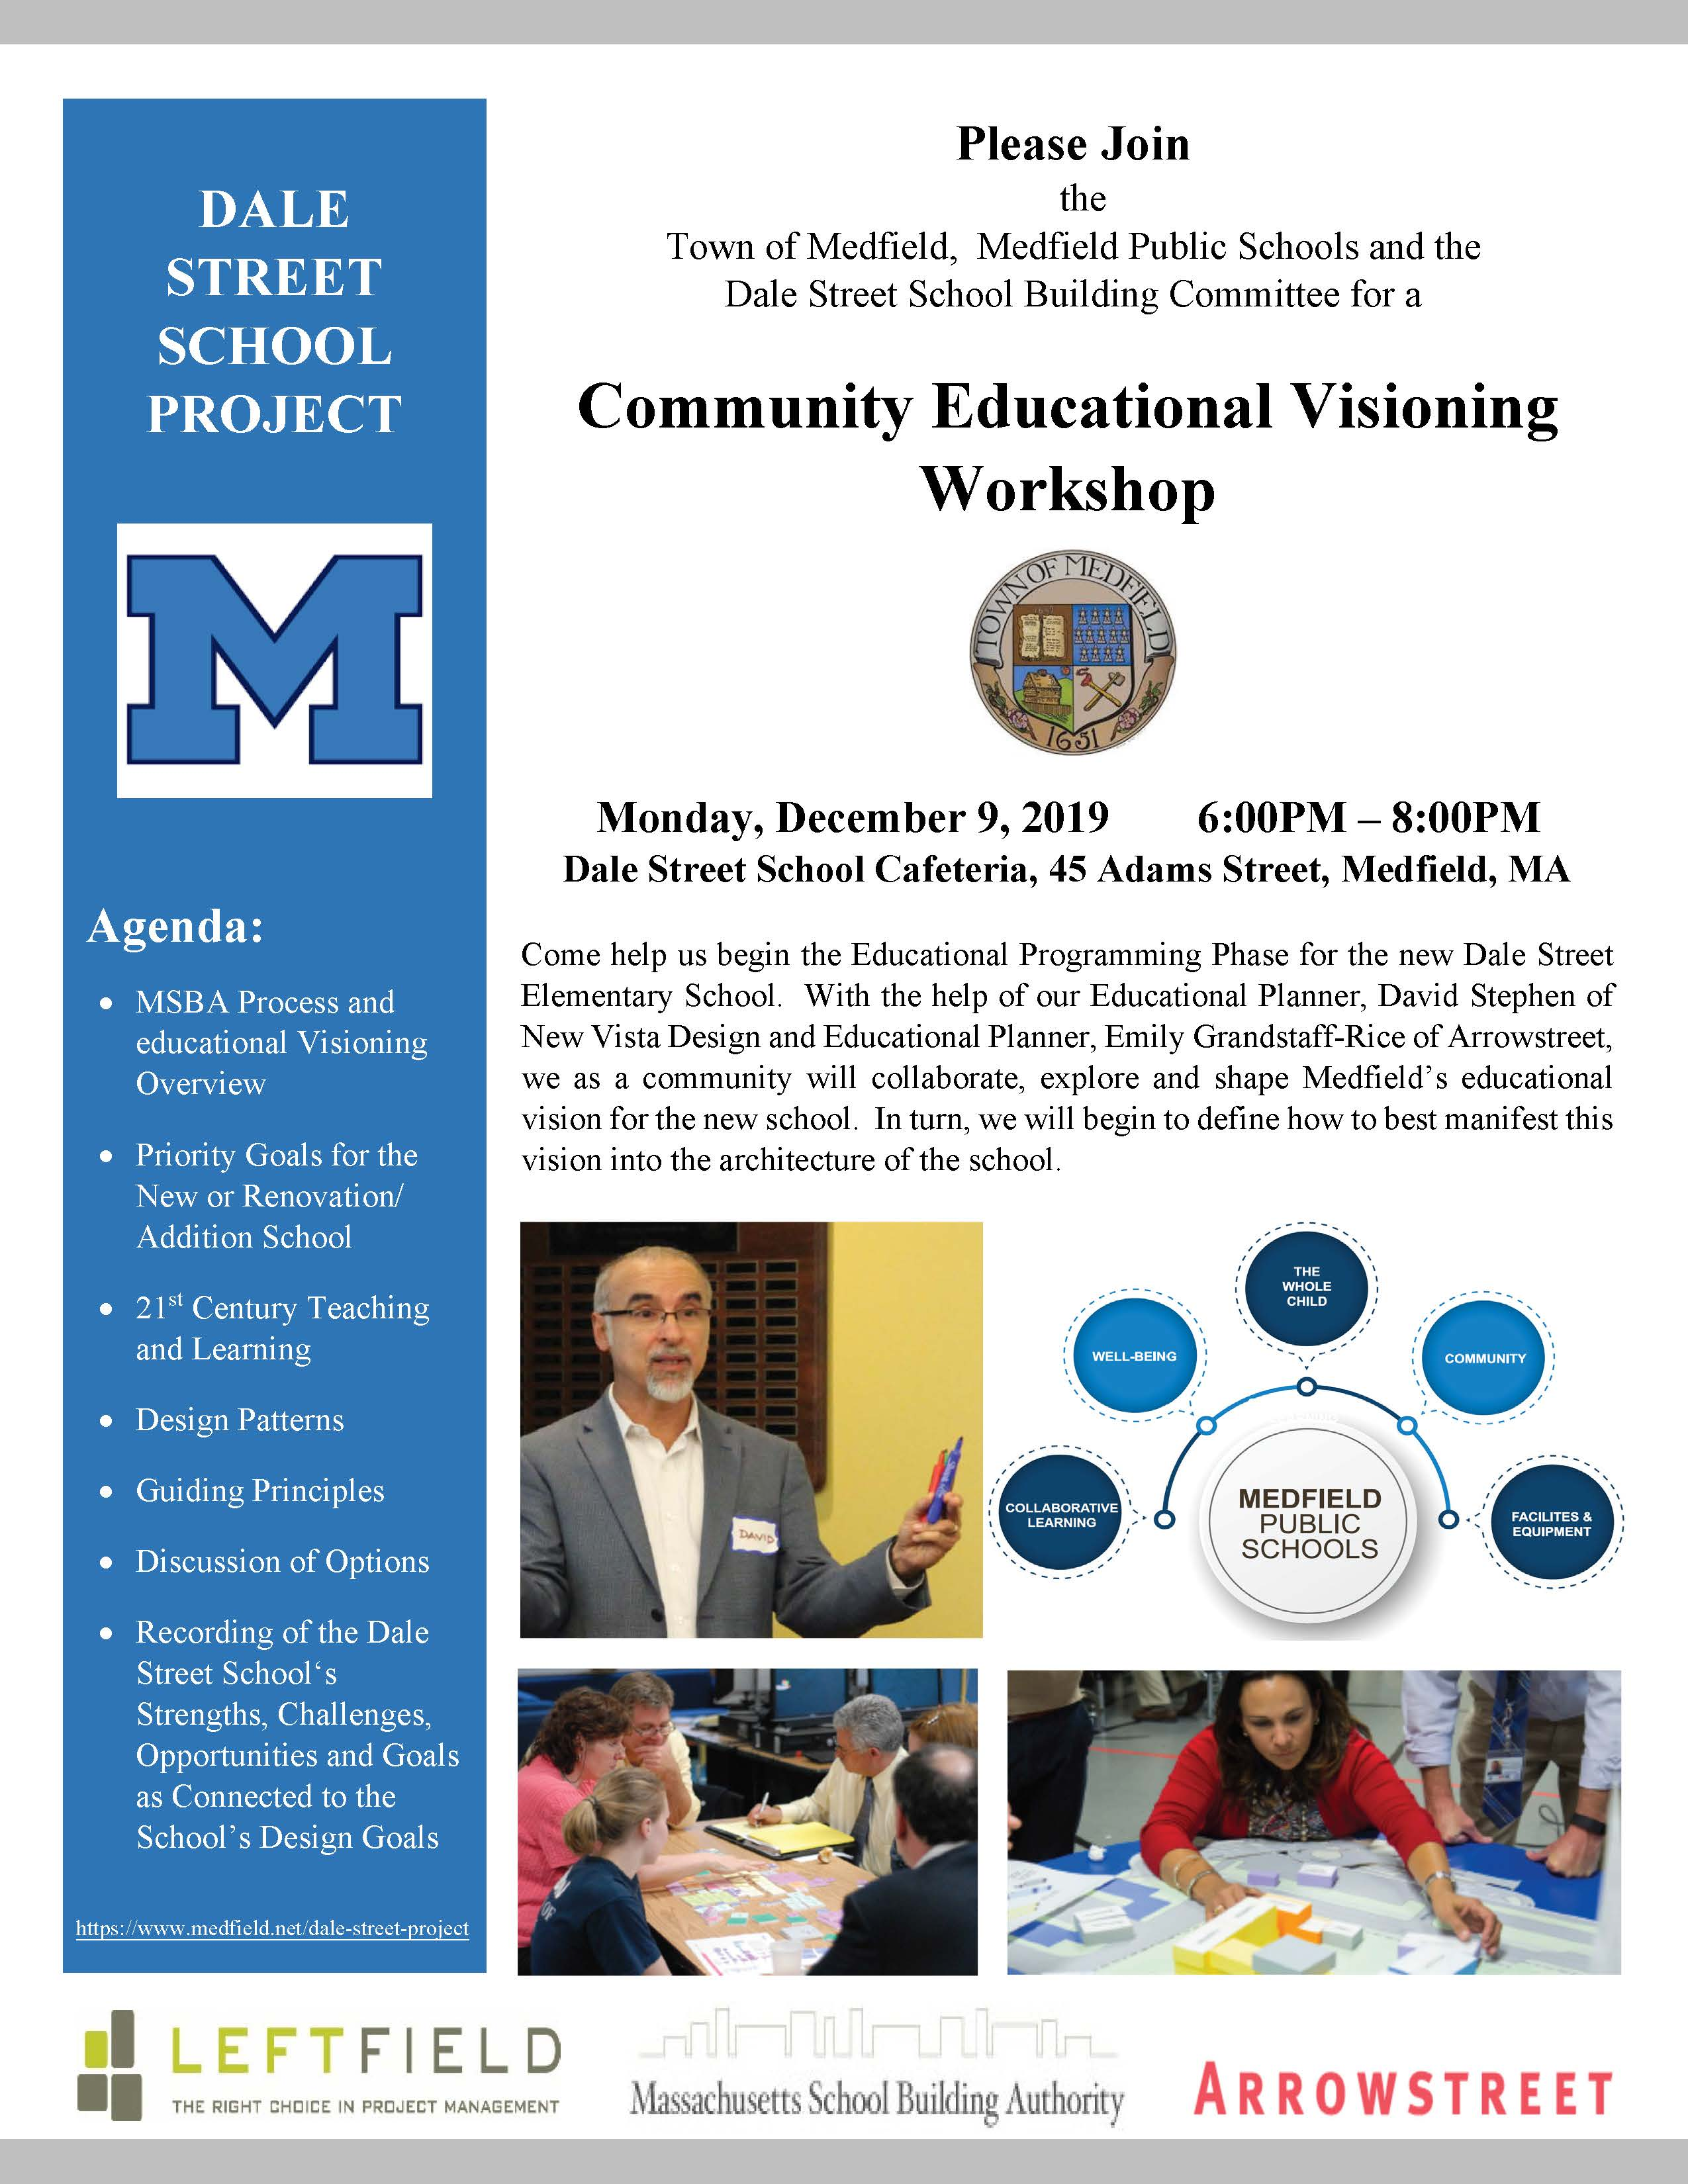 Please Join the Town of Medfield, Medfield Public Schools and the Dale Street School Building Committee for a Community Educational Visioning Workshop Monday, December 9, 2019 6:00PM – 8:00PM Dale Street School Cafeteria, 45 Adams Street, Medfield, MA Come help us begin the Educational Programming Phase for the new Dale Street Elementary School. With the help of our Educational Planner, David Stephen of New Vista Design and Educational Planner, Emily Grandstaff-Rice of Arrowstreet, we as a community will collaborate, explore and shape Medfield's educational vision for the new school. In turn, we will begin to define how to best manifest this vision into the architecture of the school. DALE STREET SCHOOL PROJECT Agenda:  MSBA Process and educational Visioning Overview  Priority Goals for the New or Renovation/ Addition School  21st Century Teaching and Learning  Design Patterns  Guiding Principles  Discussion of Options  Recording of the Dale Street School's Strengths, Challenges, Opportunities and Goals as Connected to the School's Design Goals https://www.medfield.net/dale-street-project